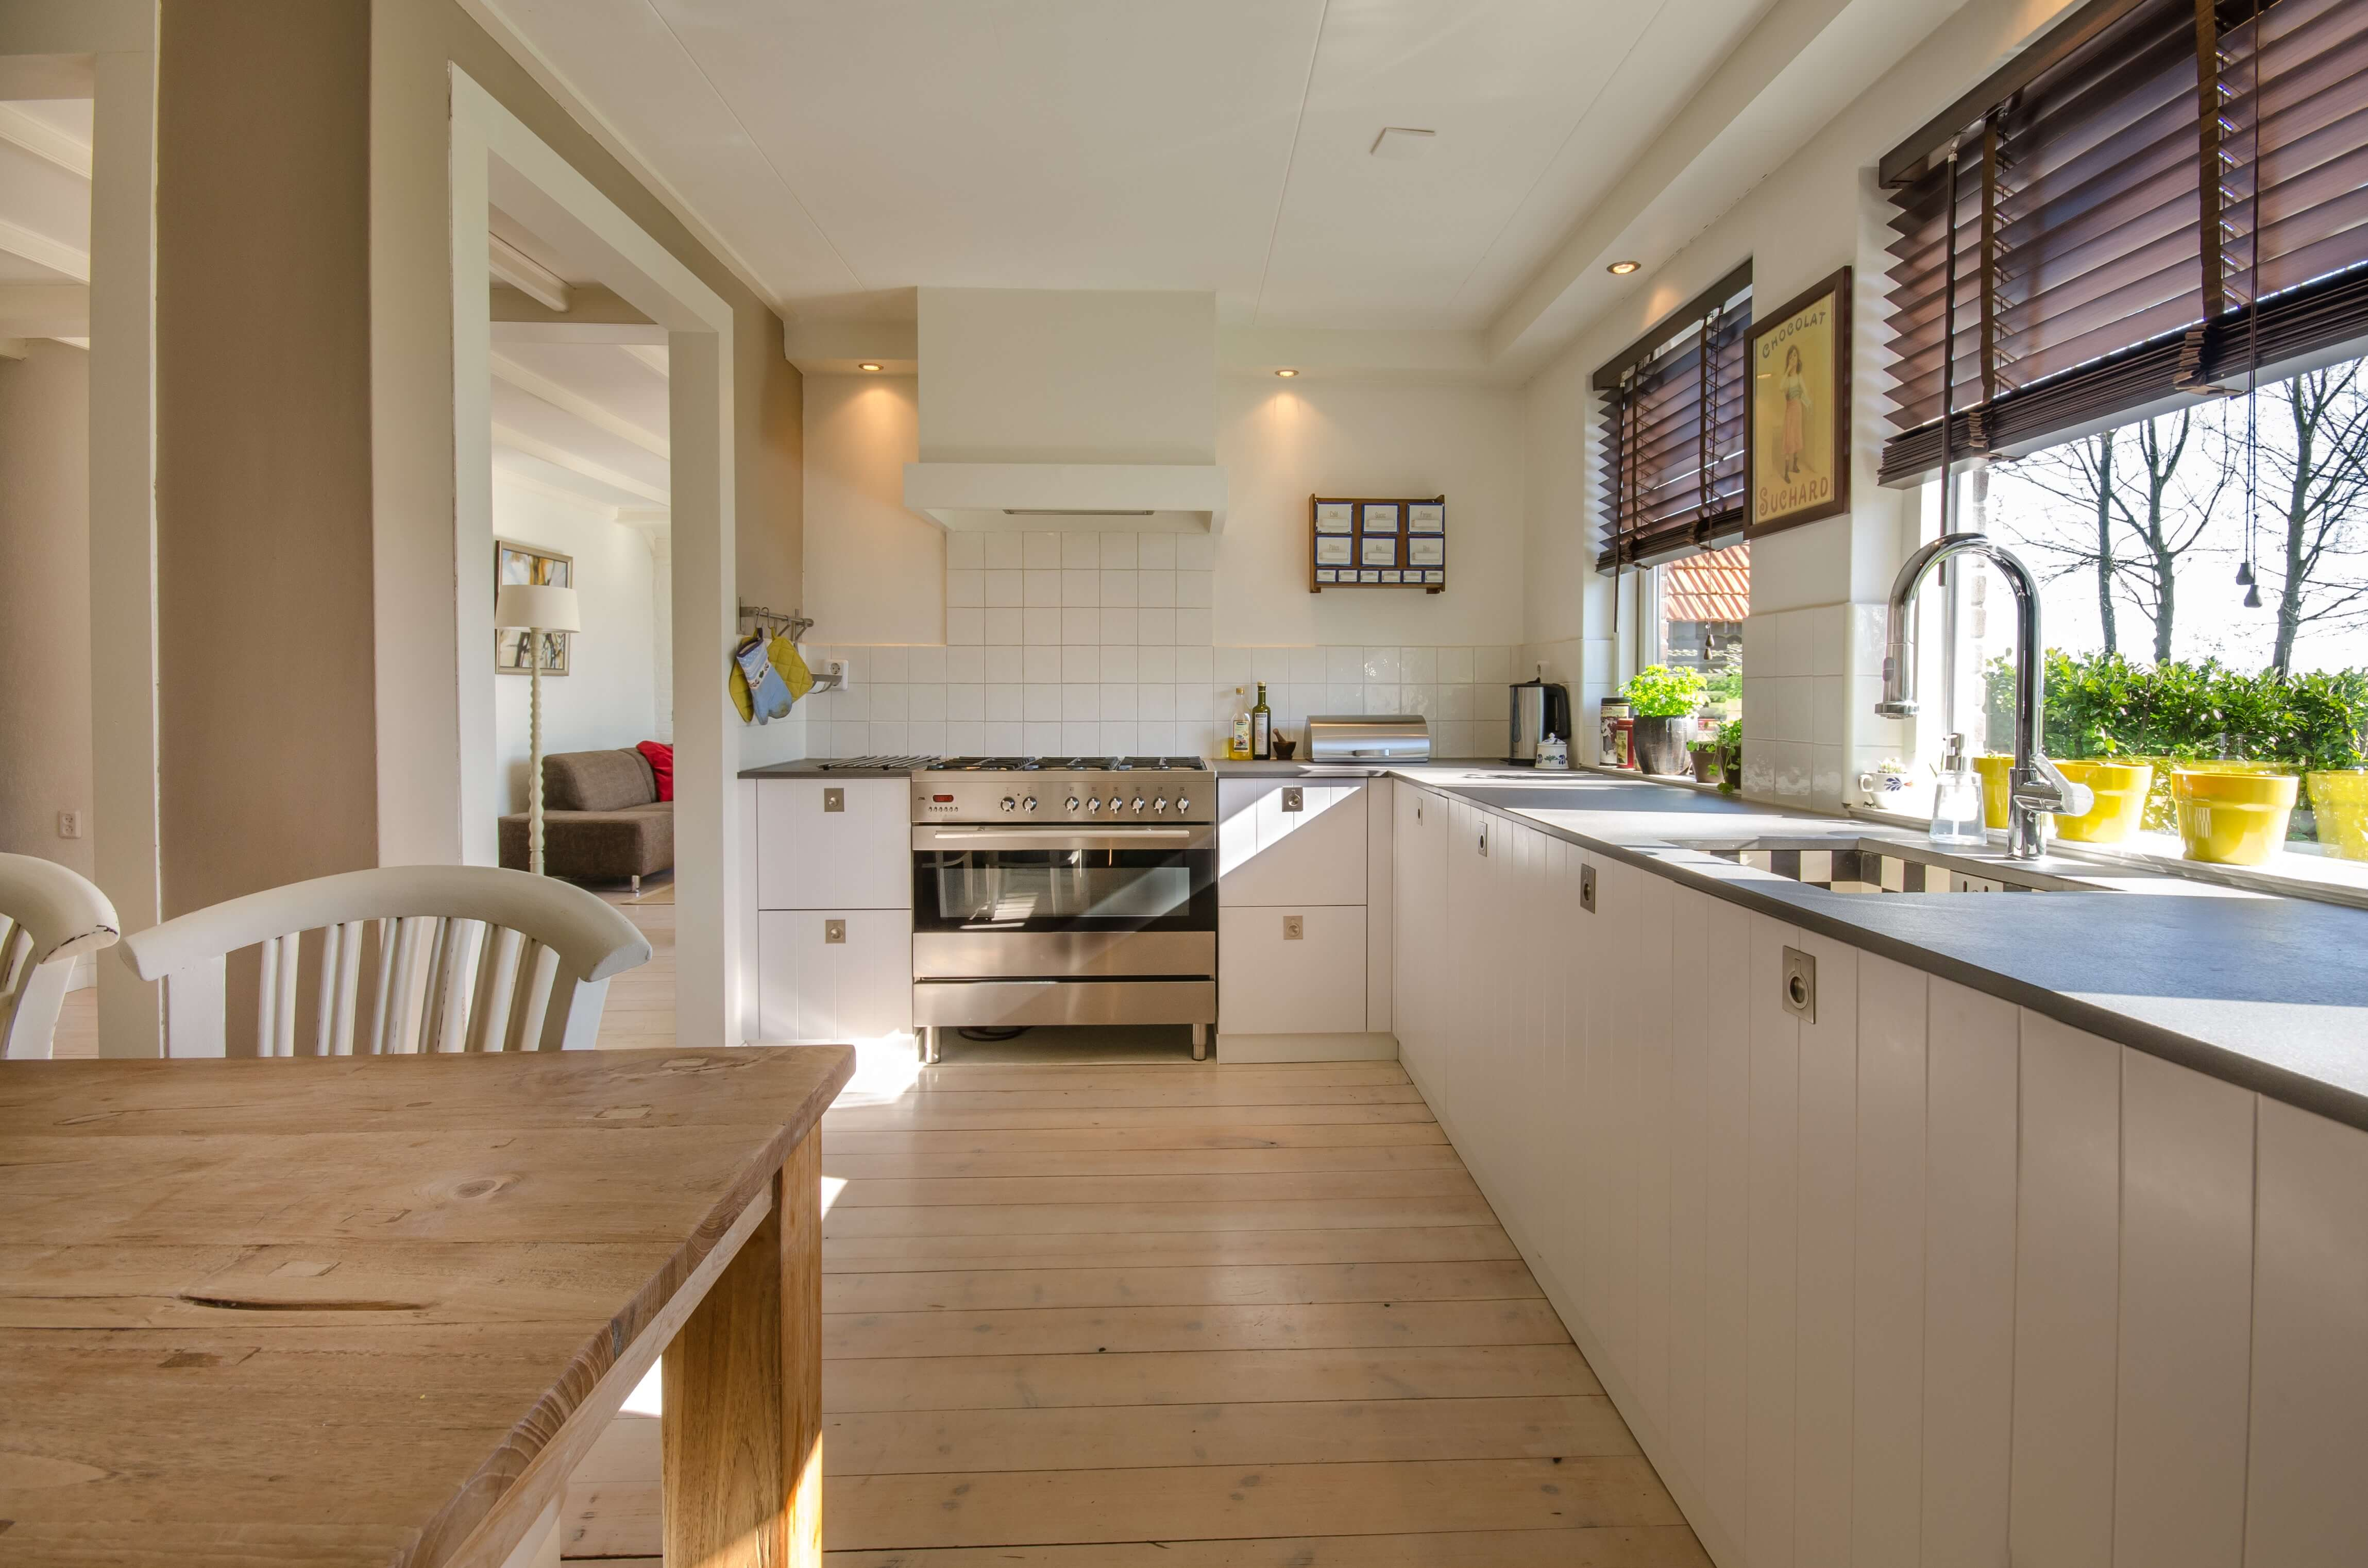 Cost of a kitchen